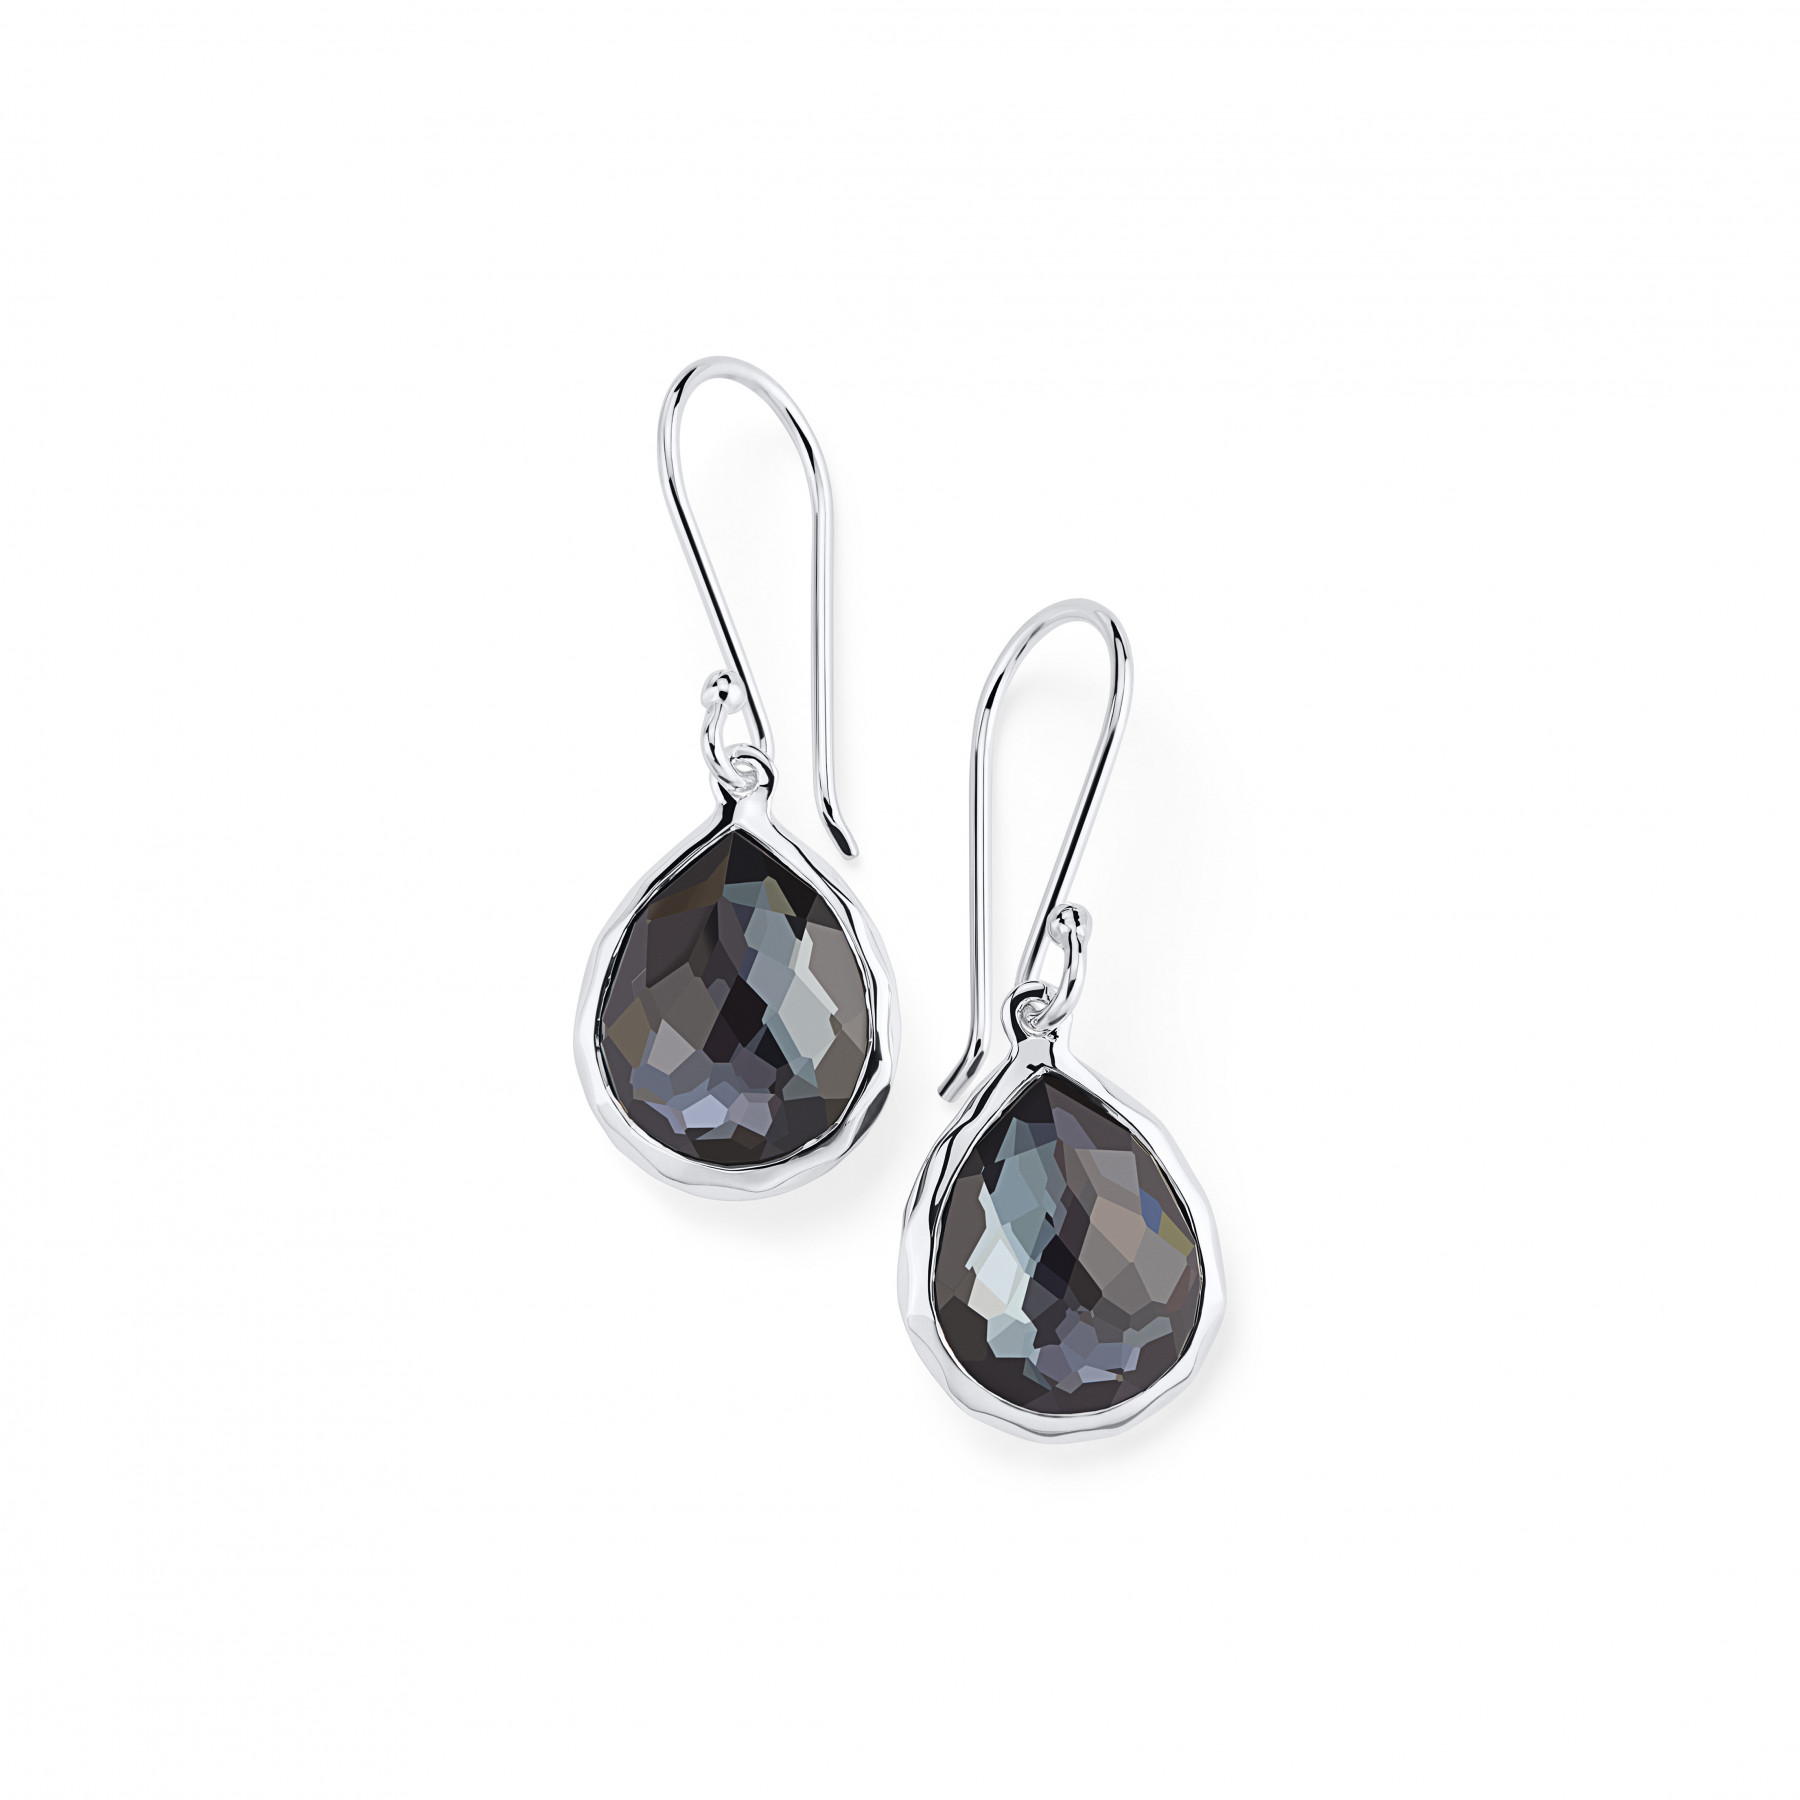 IPPOLITA Silver Rock Candy Mini Hematite Drop Earrings